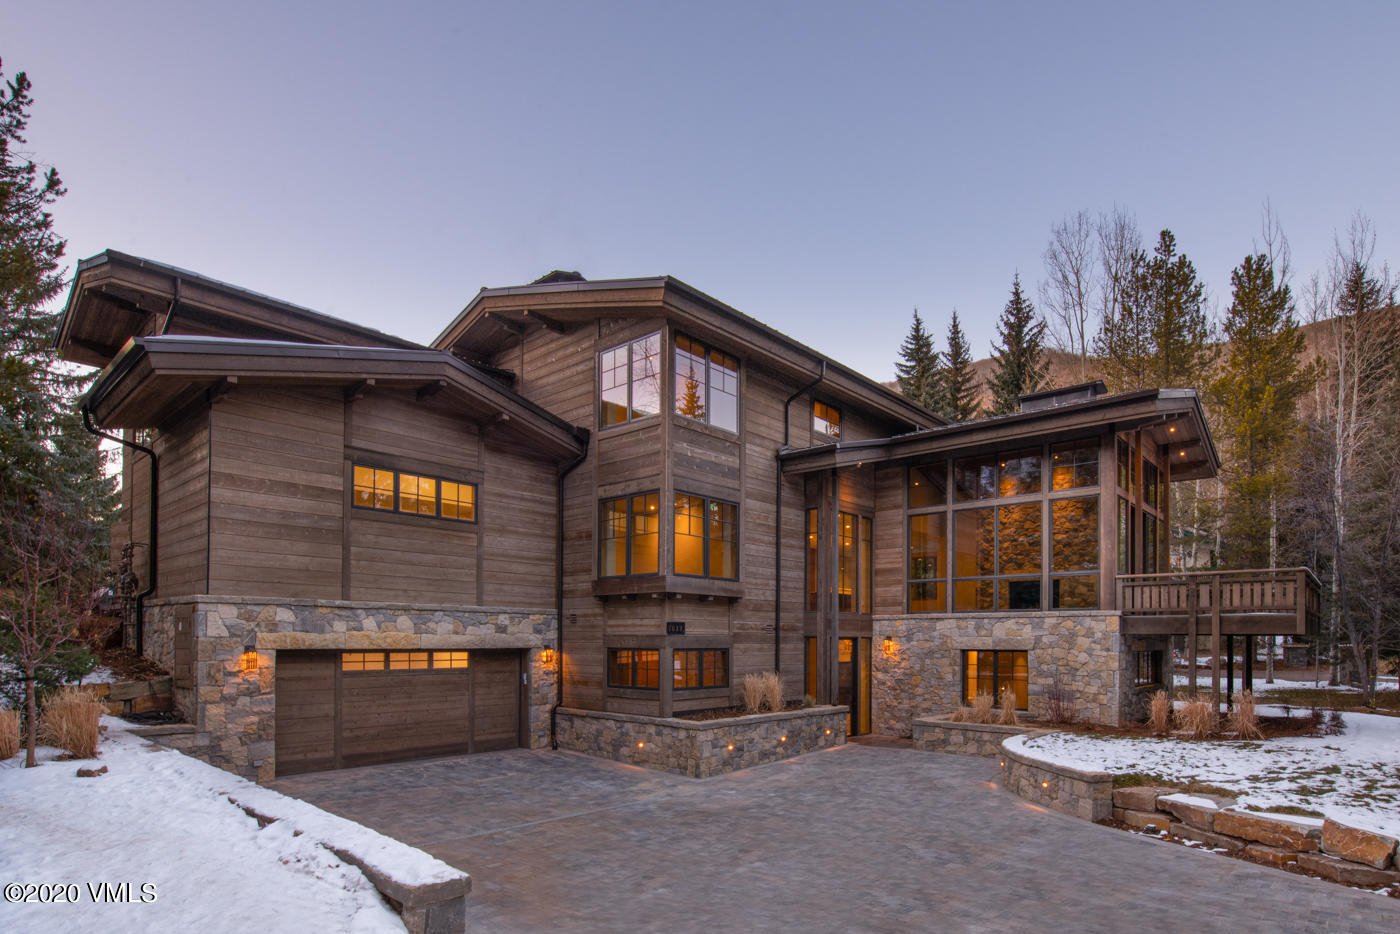 Magnificent new construction on the Vail Golf Course. This custom residence features an open floor plan, custom finishes, gourmet kitchen, radiant heat/AC  snow-melt driveway and terraces. Estimated date of completion, November 2020. Primary side of newly constructed Duplex.